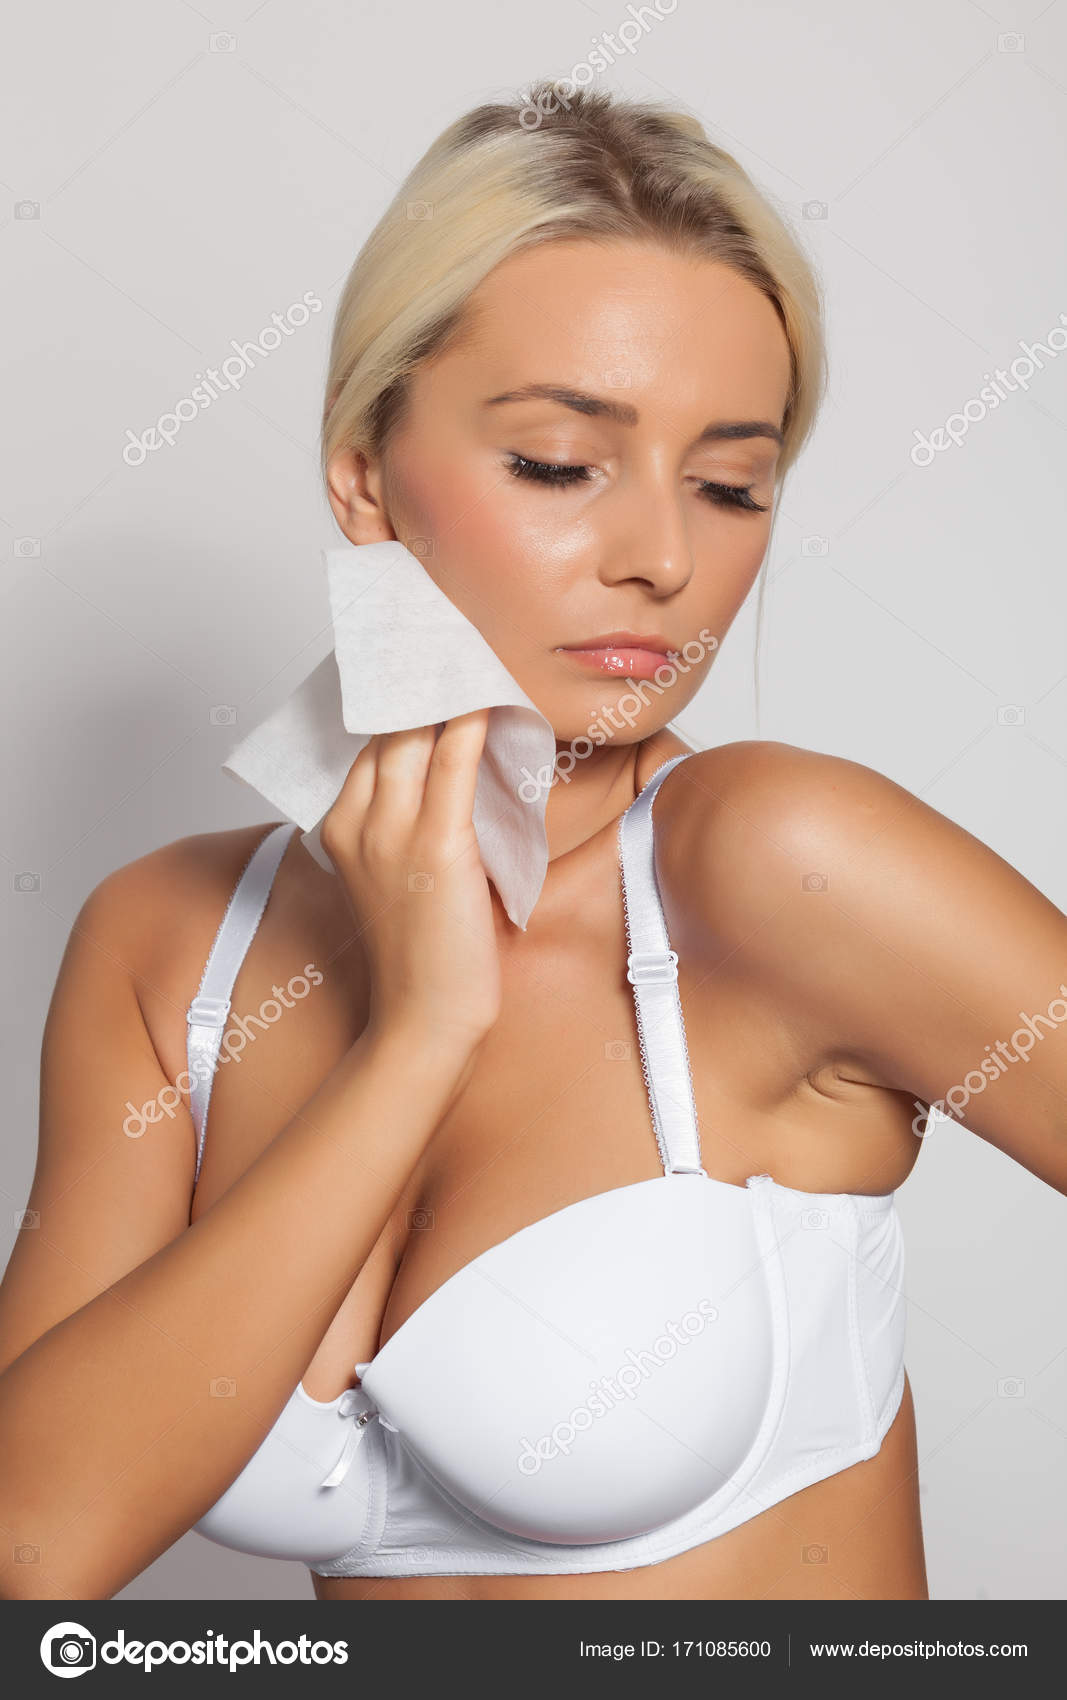 Woman clean neck with wet wipes — Stock Photo © adam r  171085600 1a7983ebd